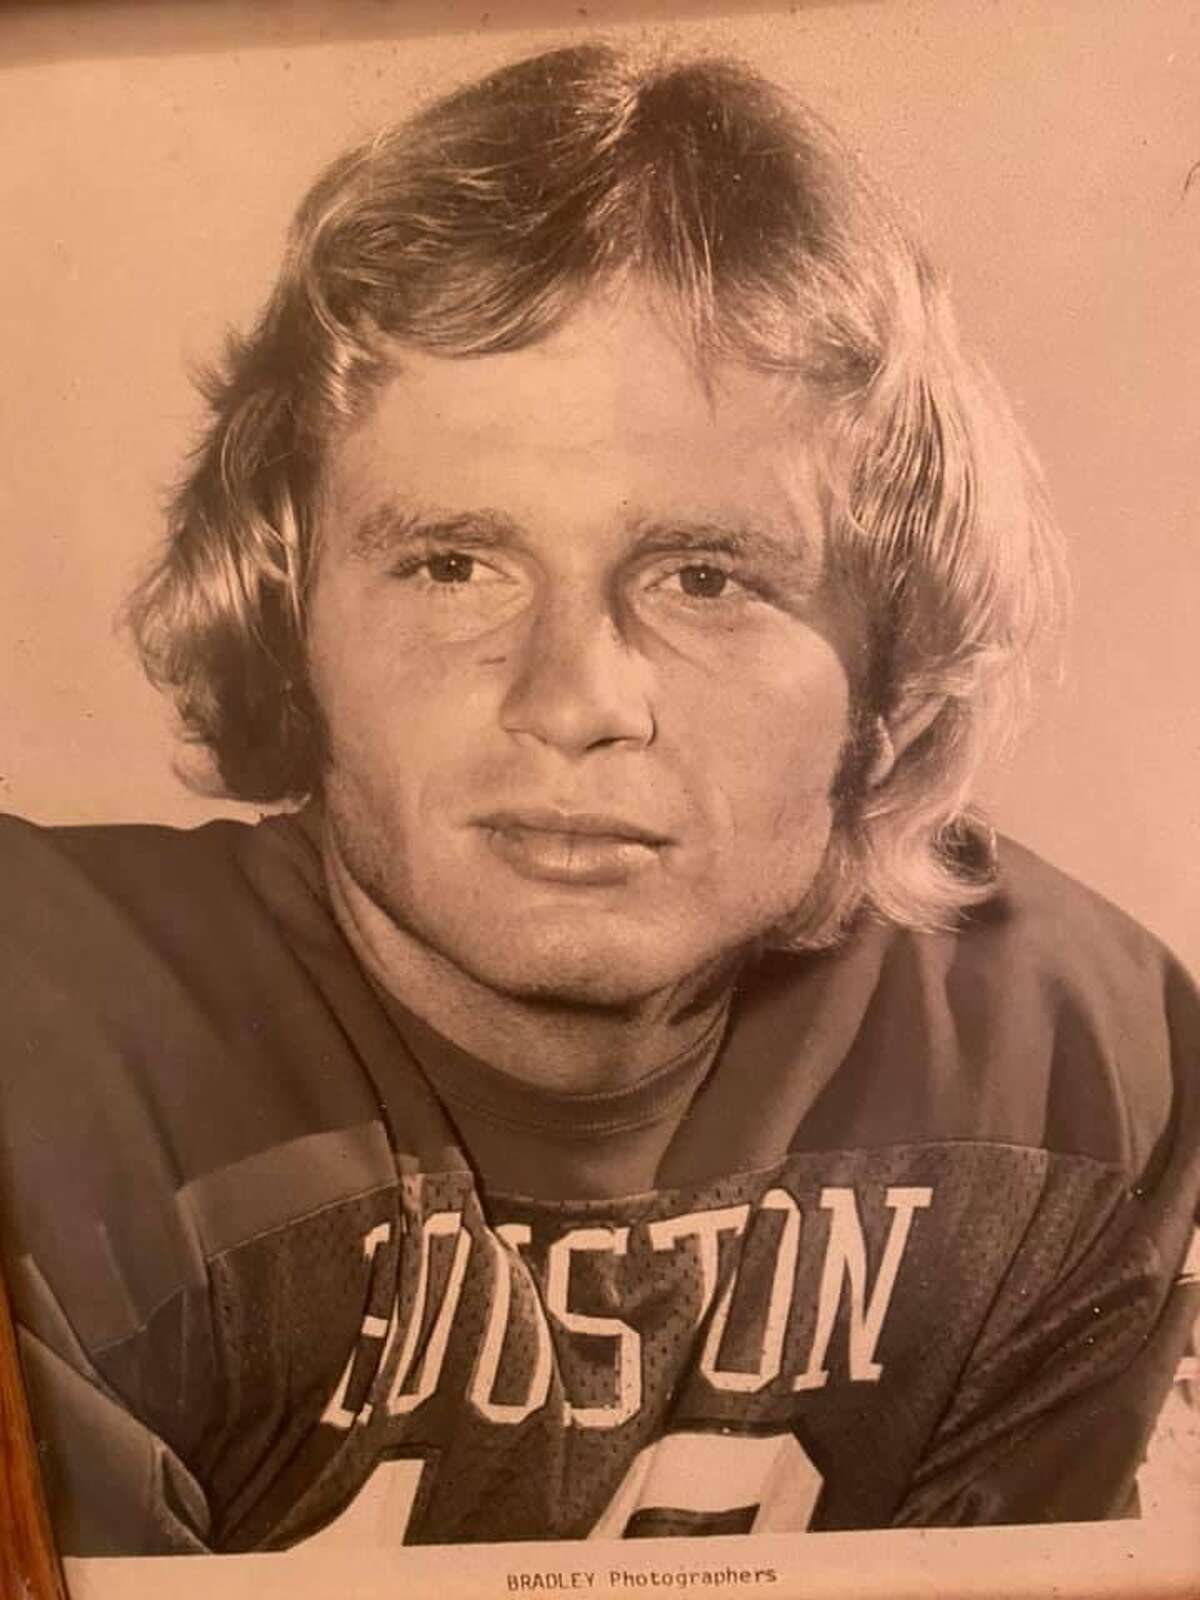 David Husmann played quarterback for the Cougars from 1973-75.